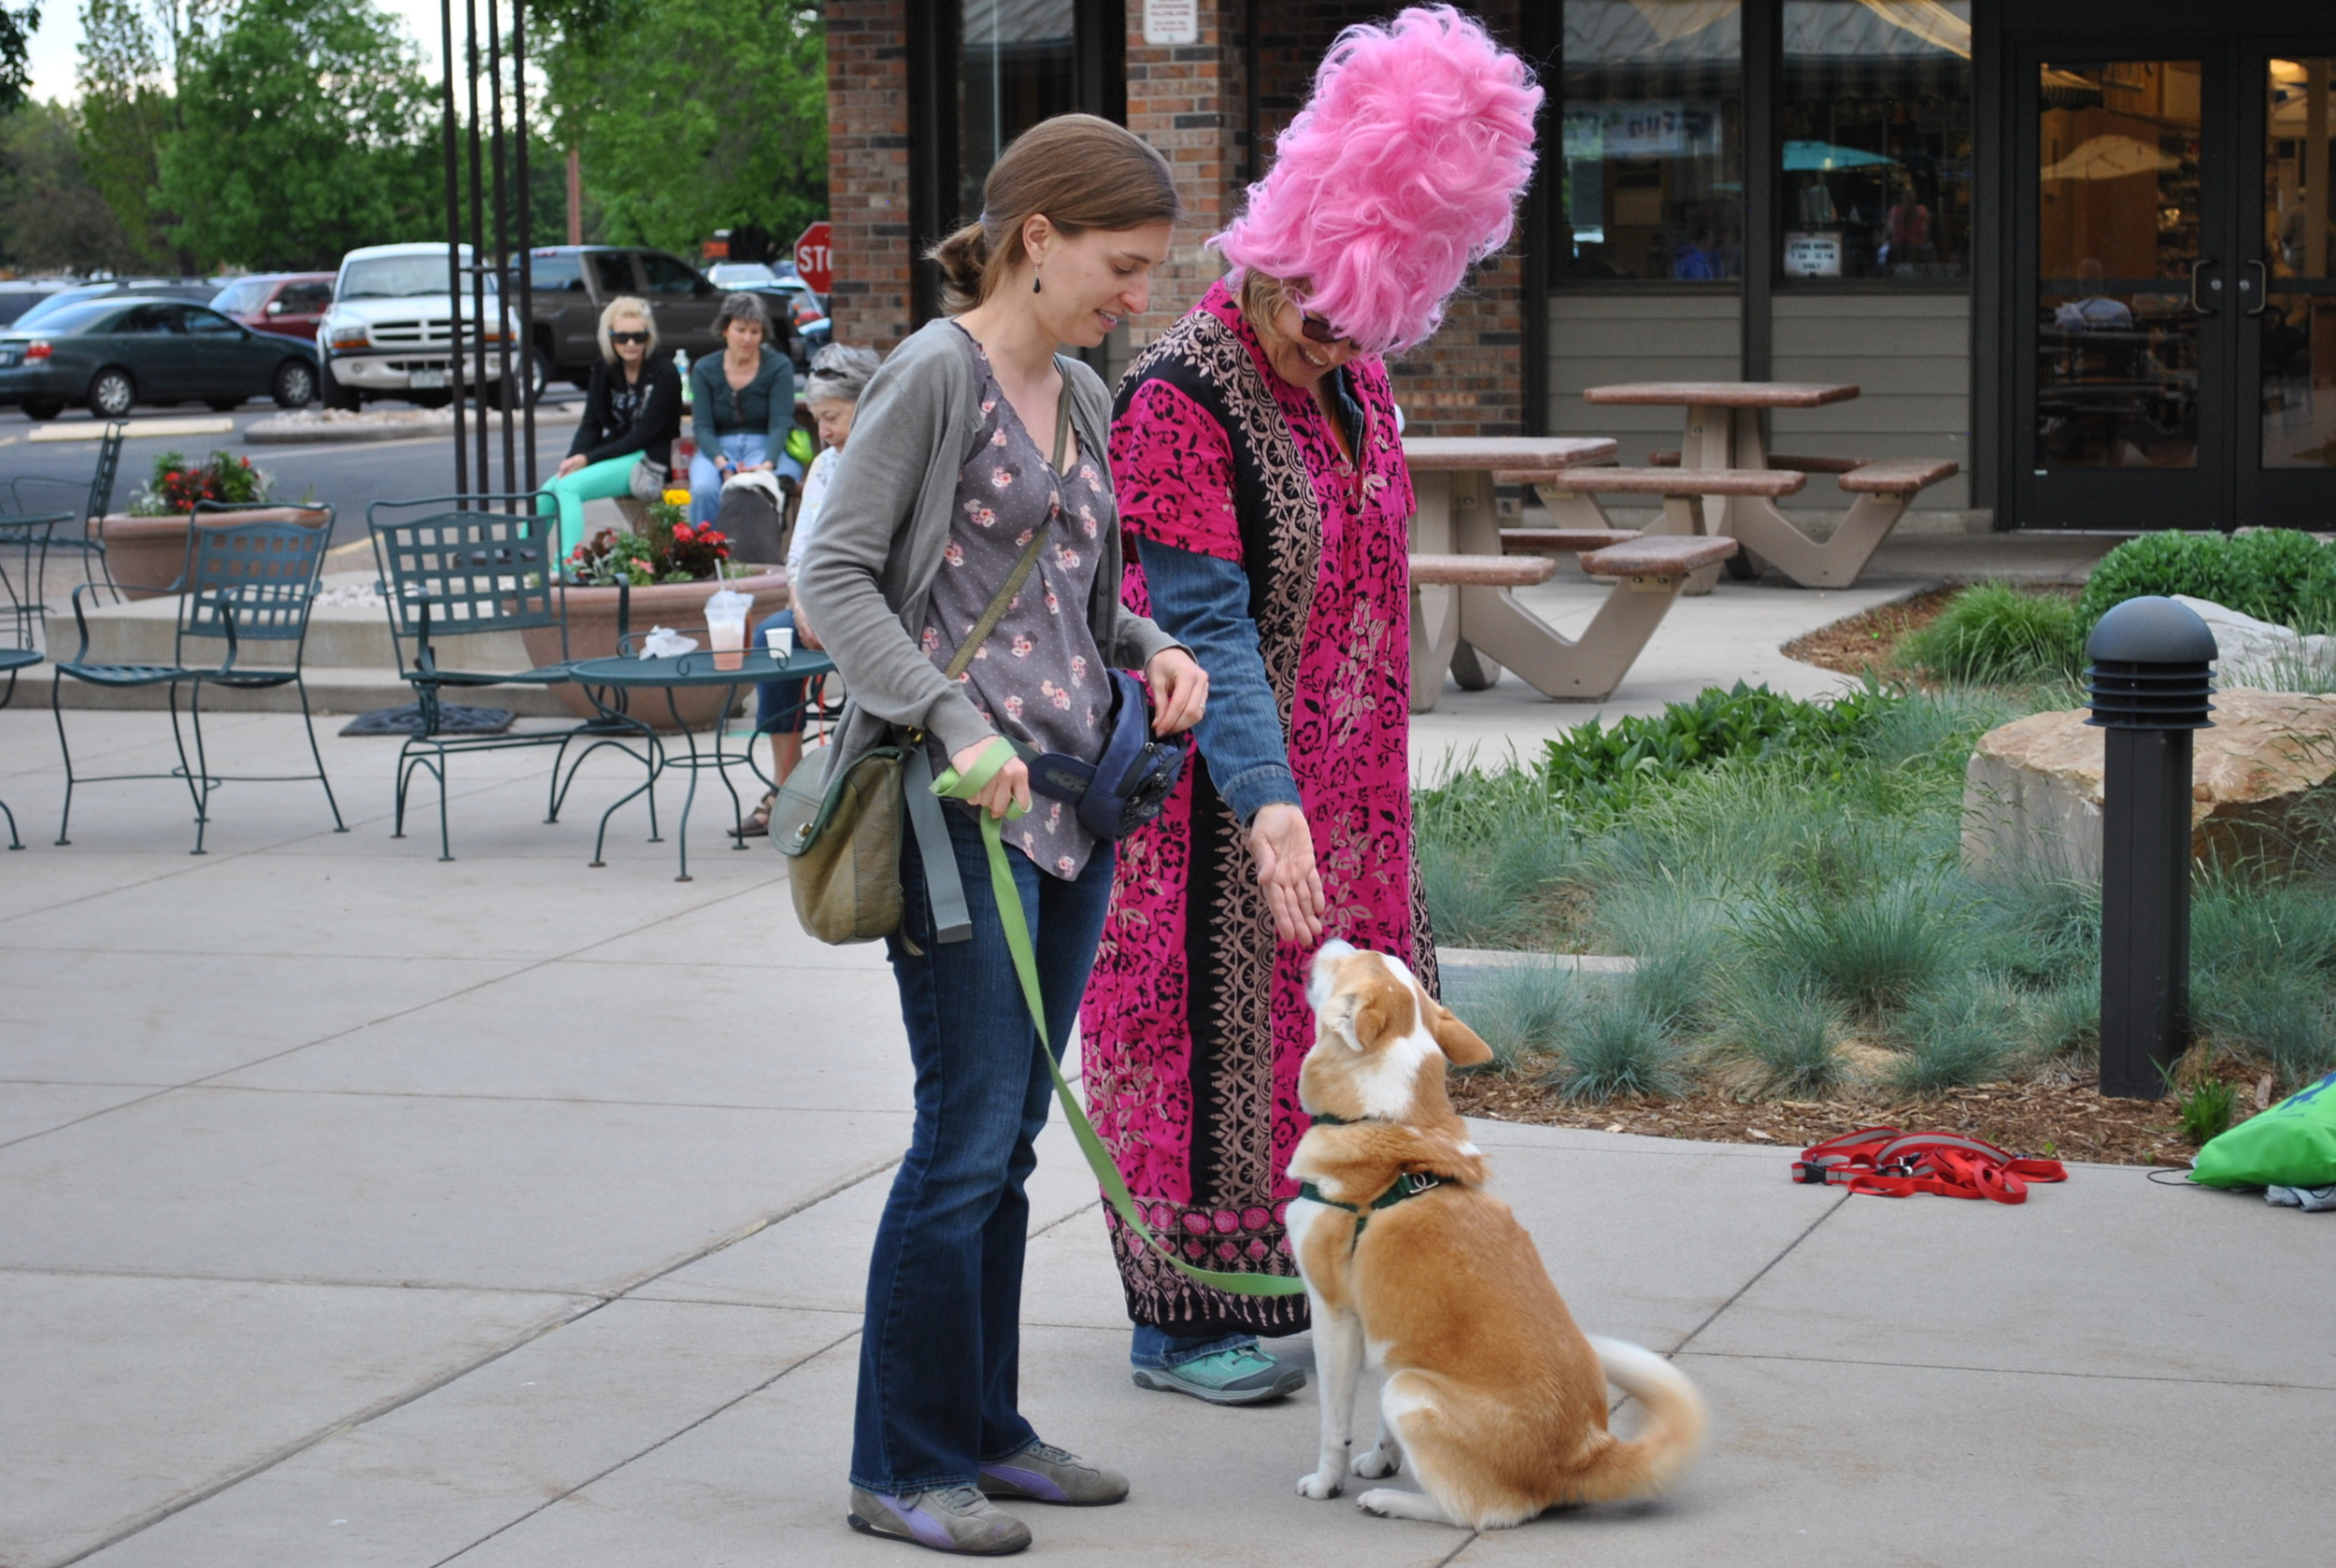 Dogs need to be socialized to all sorts of people.